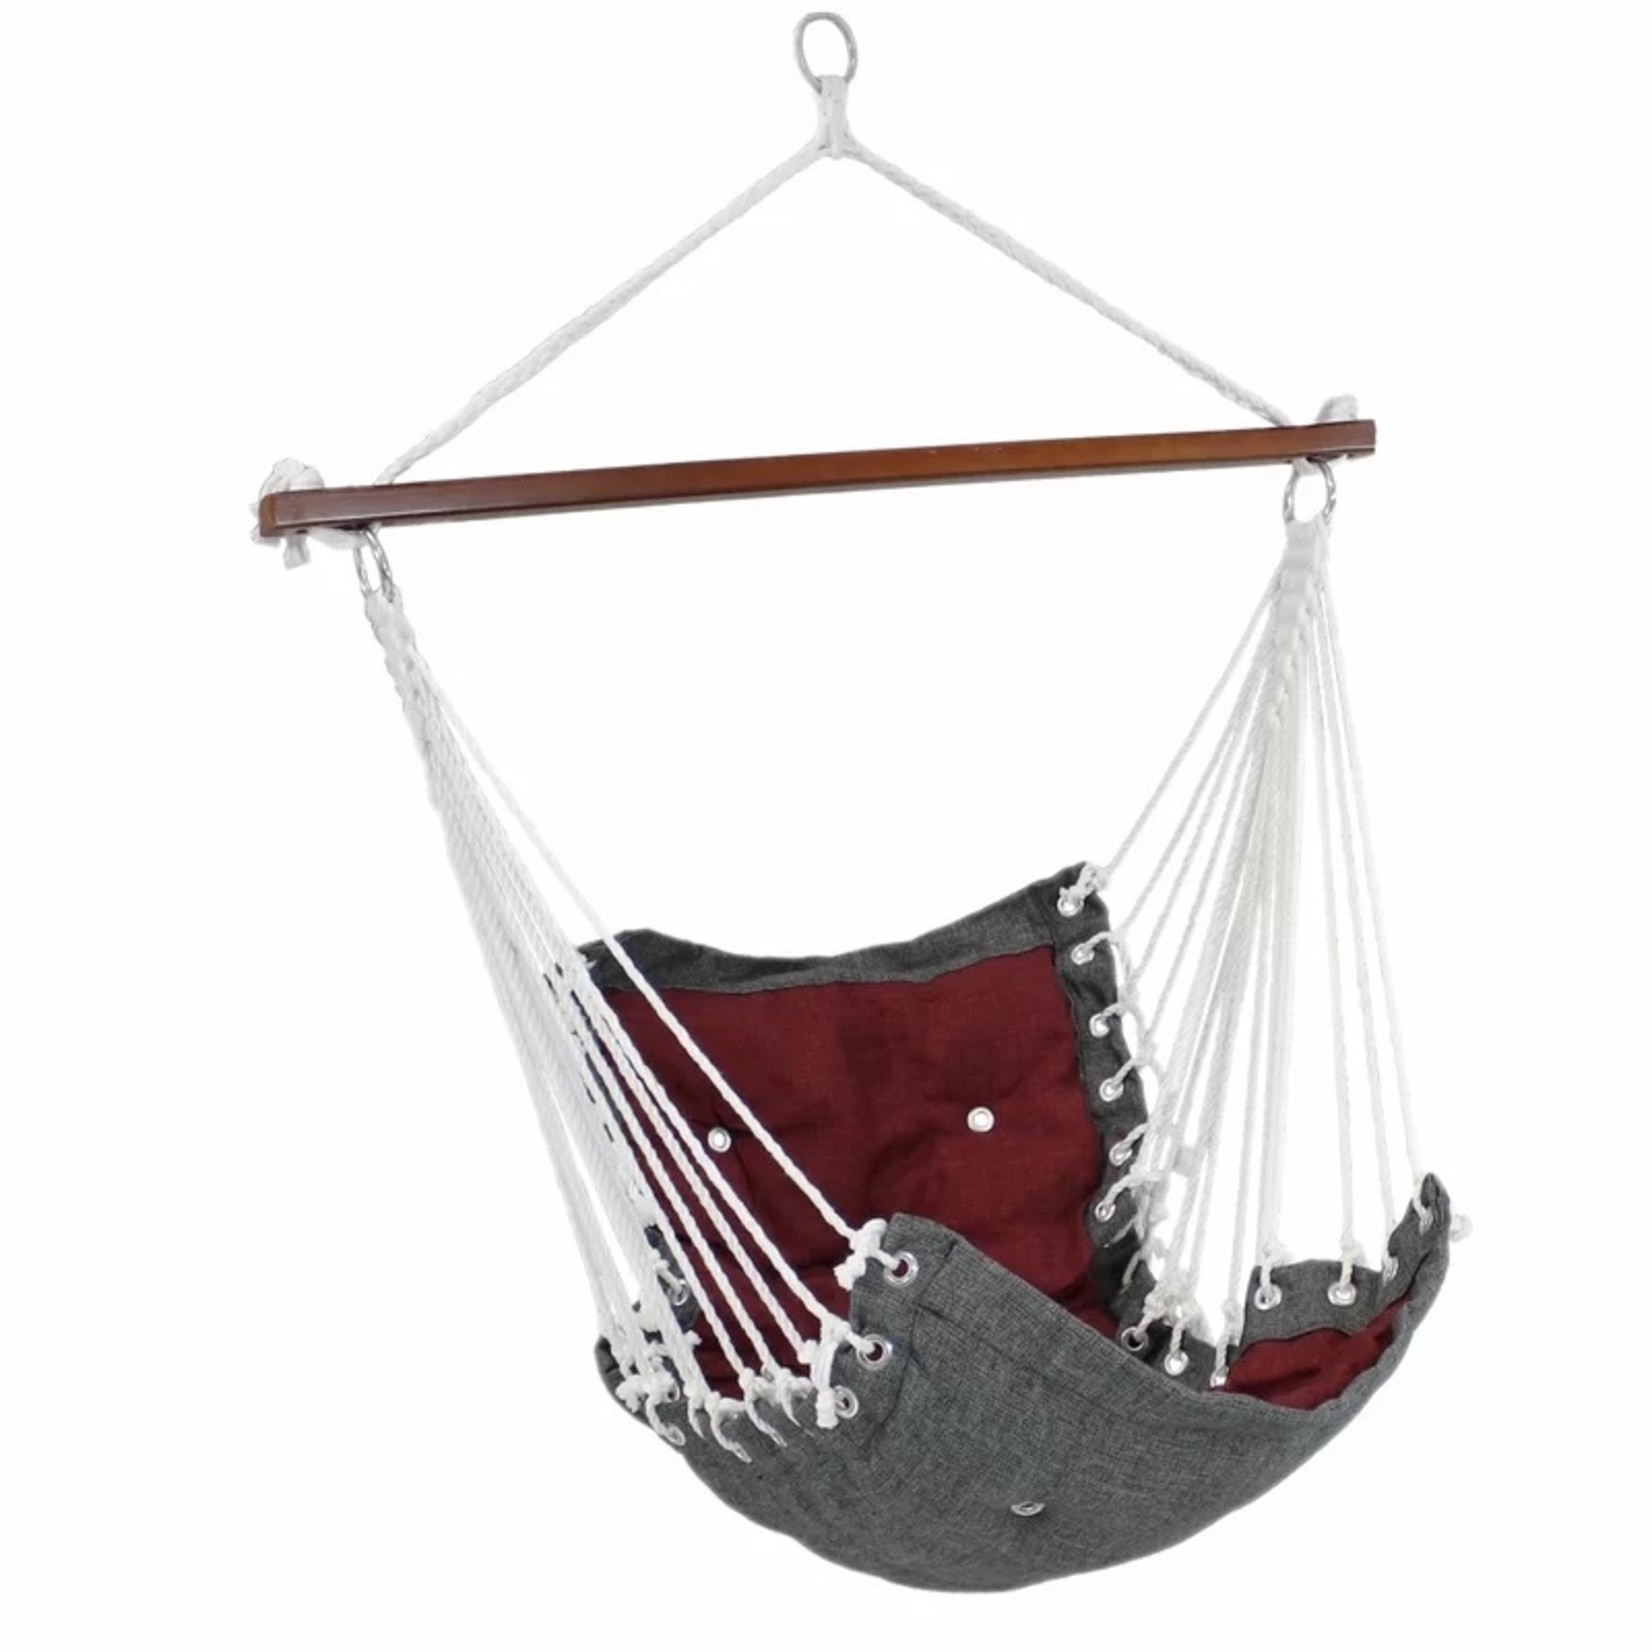 *Cade Tufted Swing Chair - Red/Grey